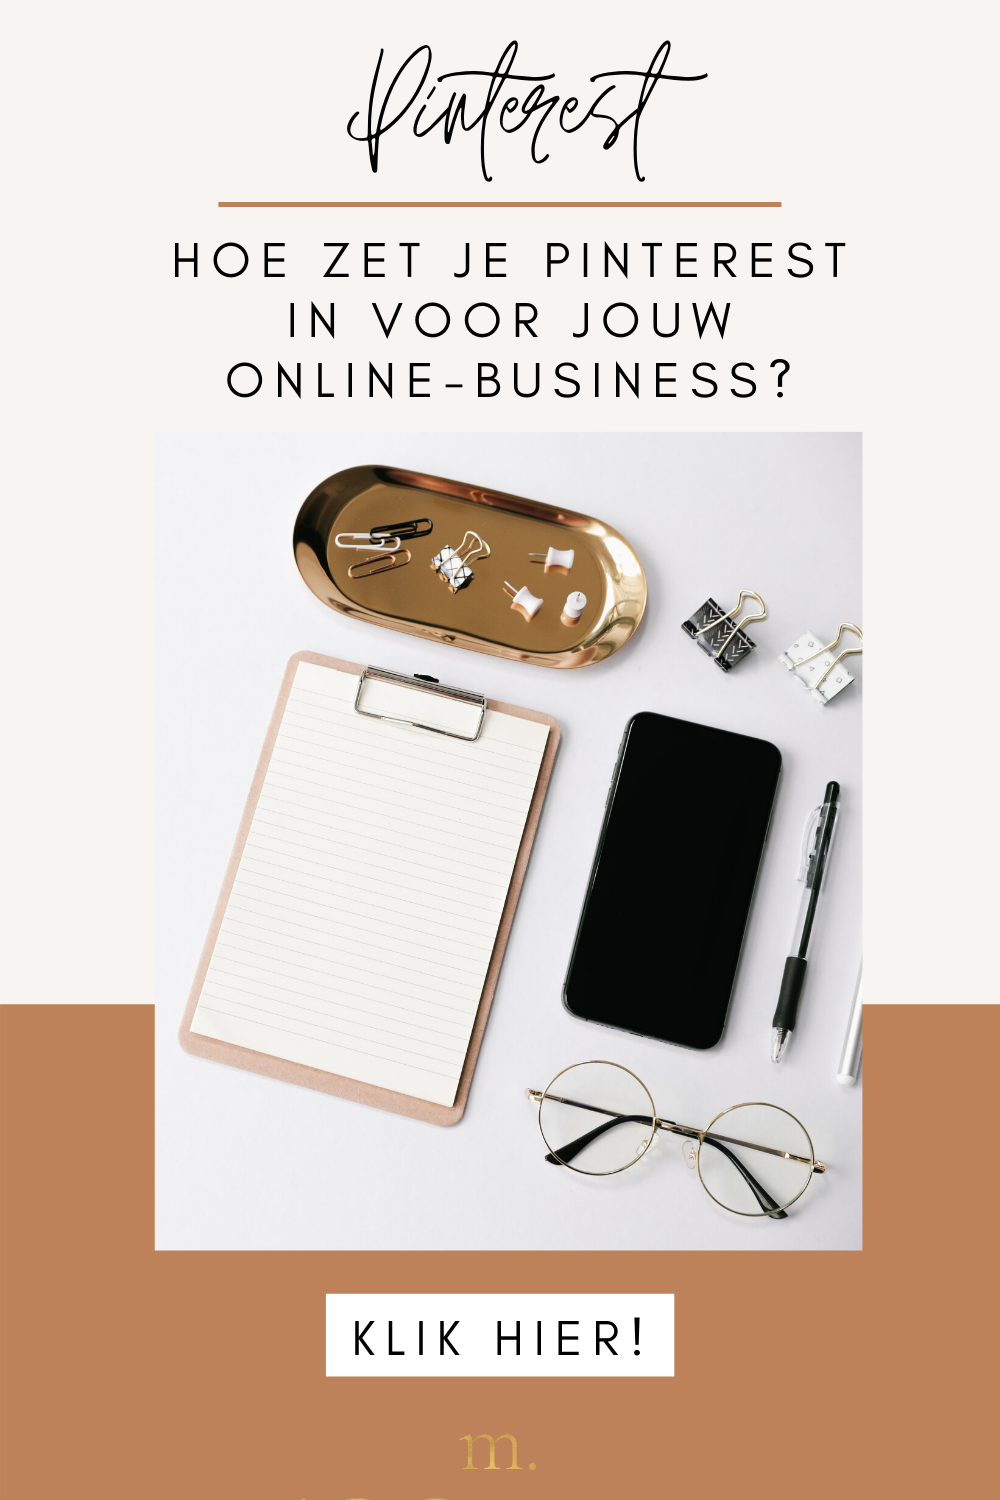 Pinterest inzetten voor jouw online-business